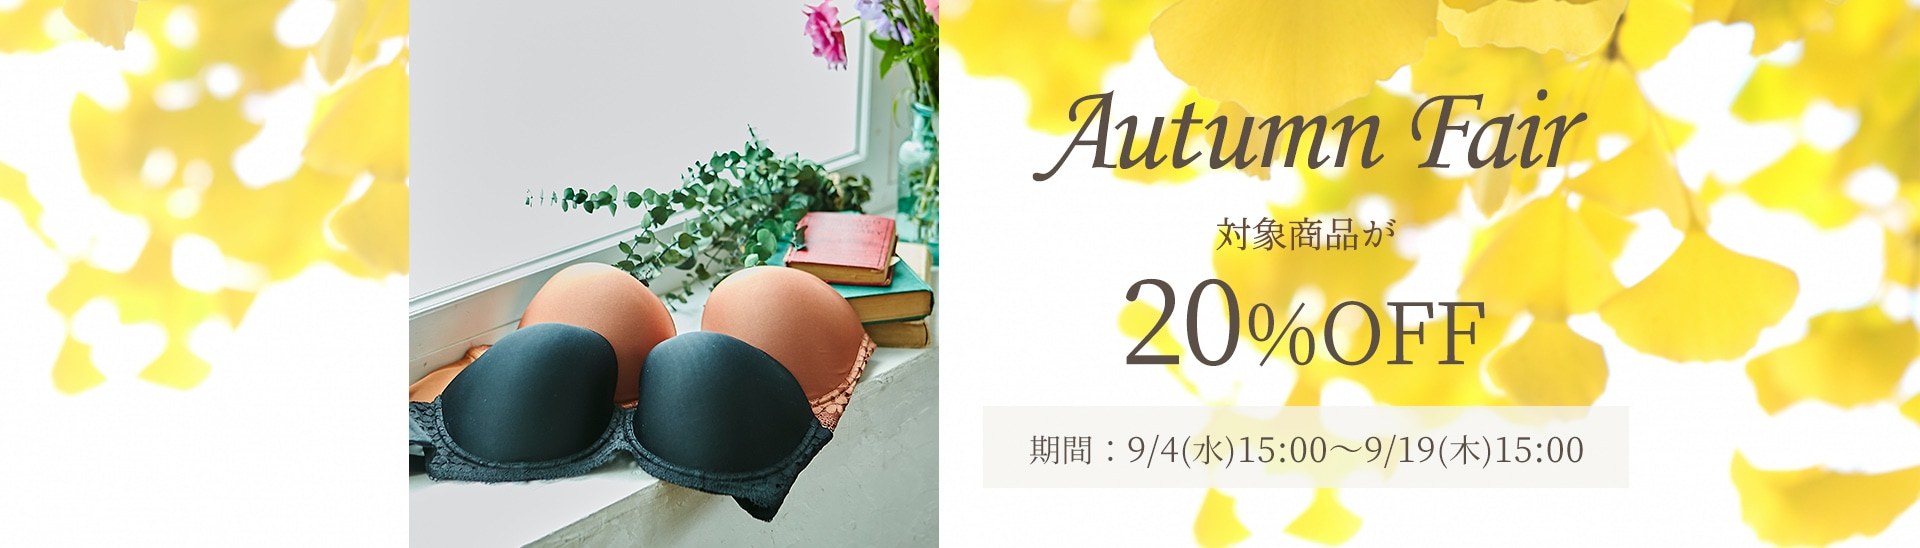 AutumnFair20%OFF